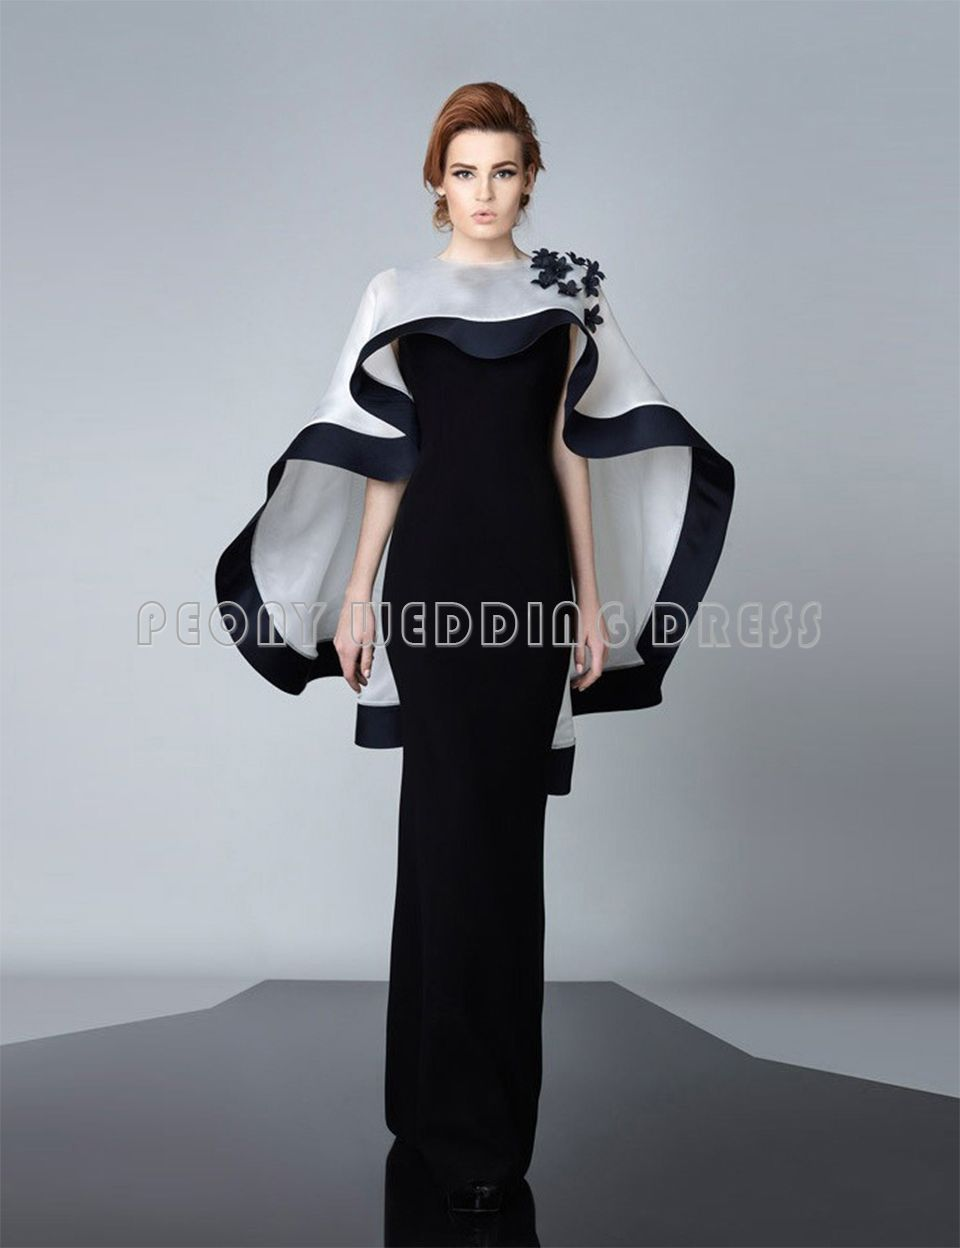 Elegant Evening Gowns and Dresses